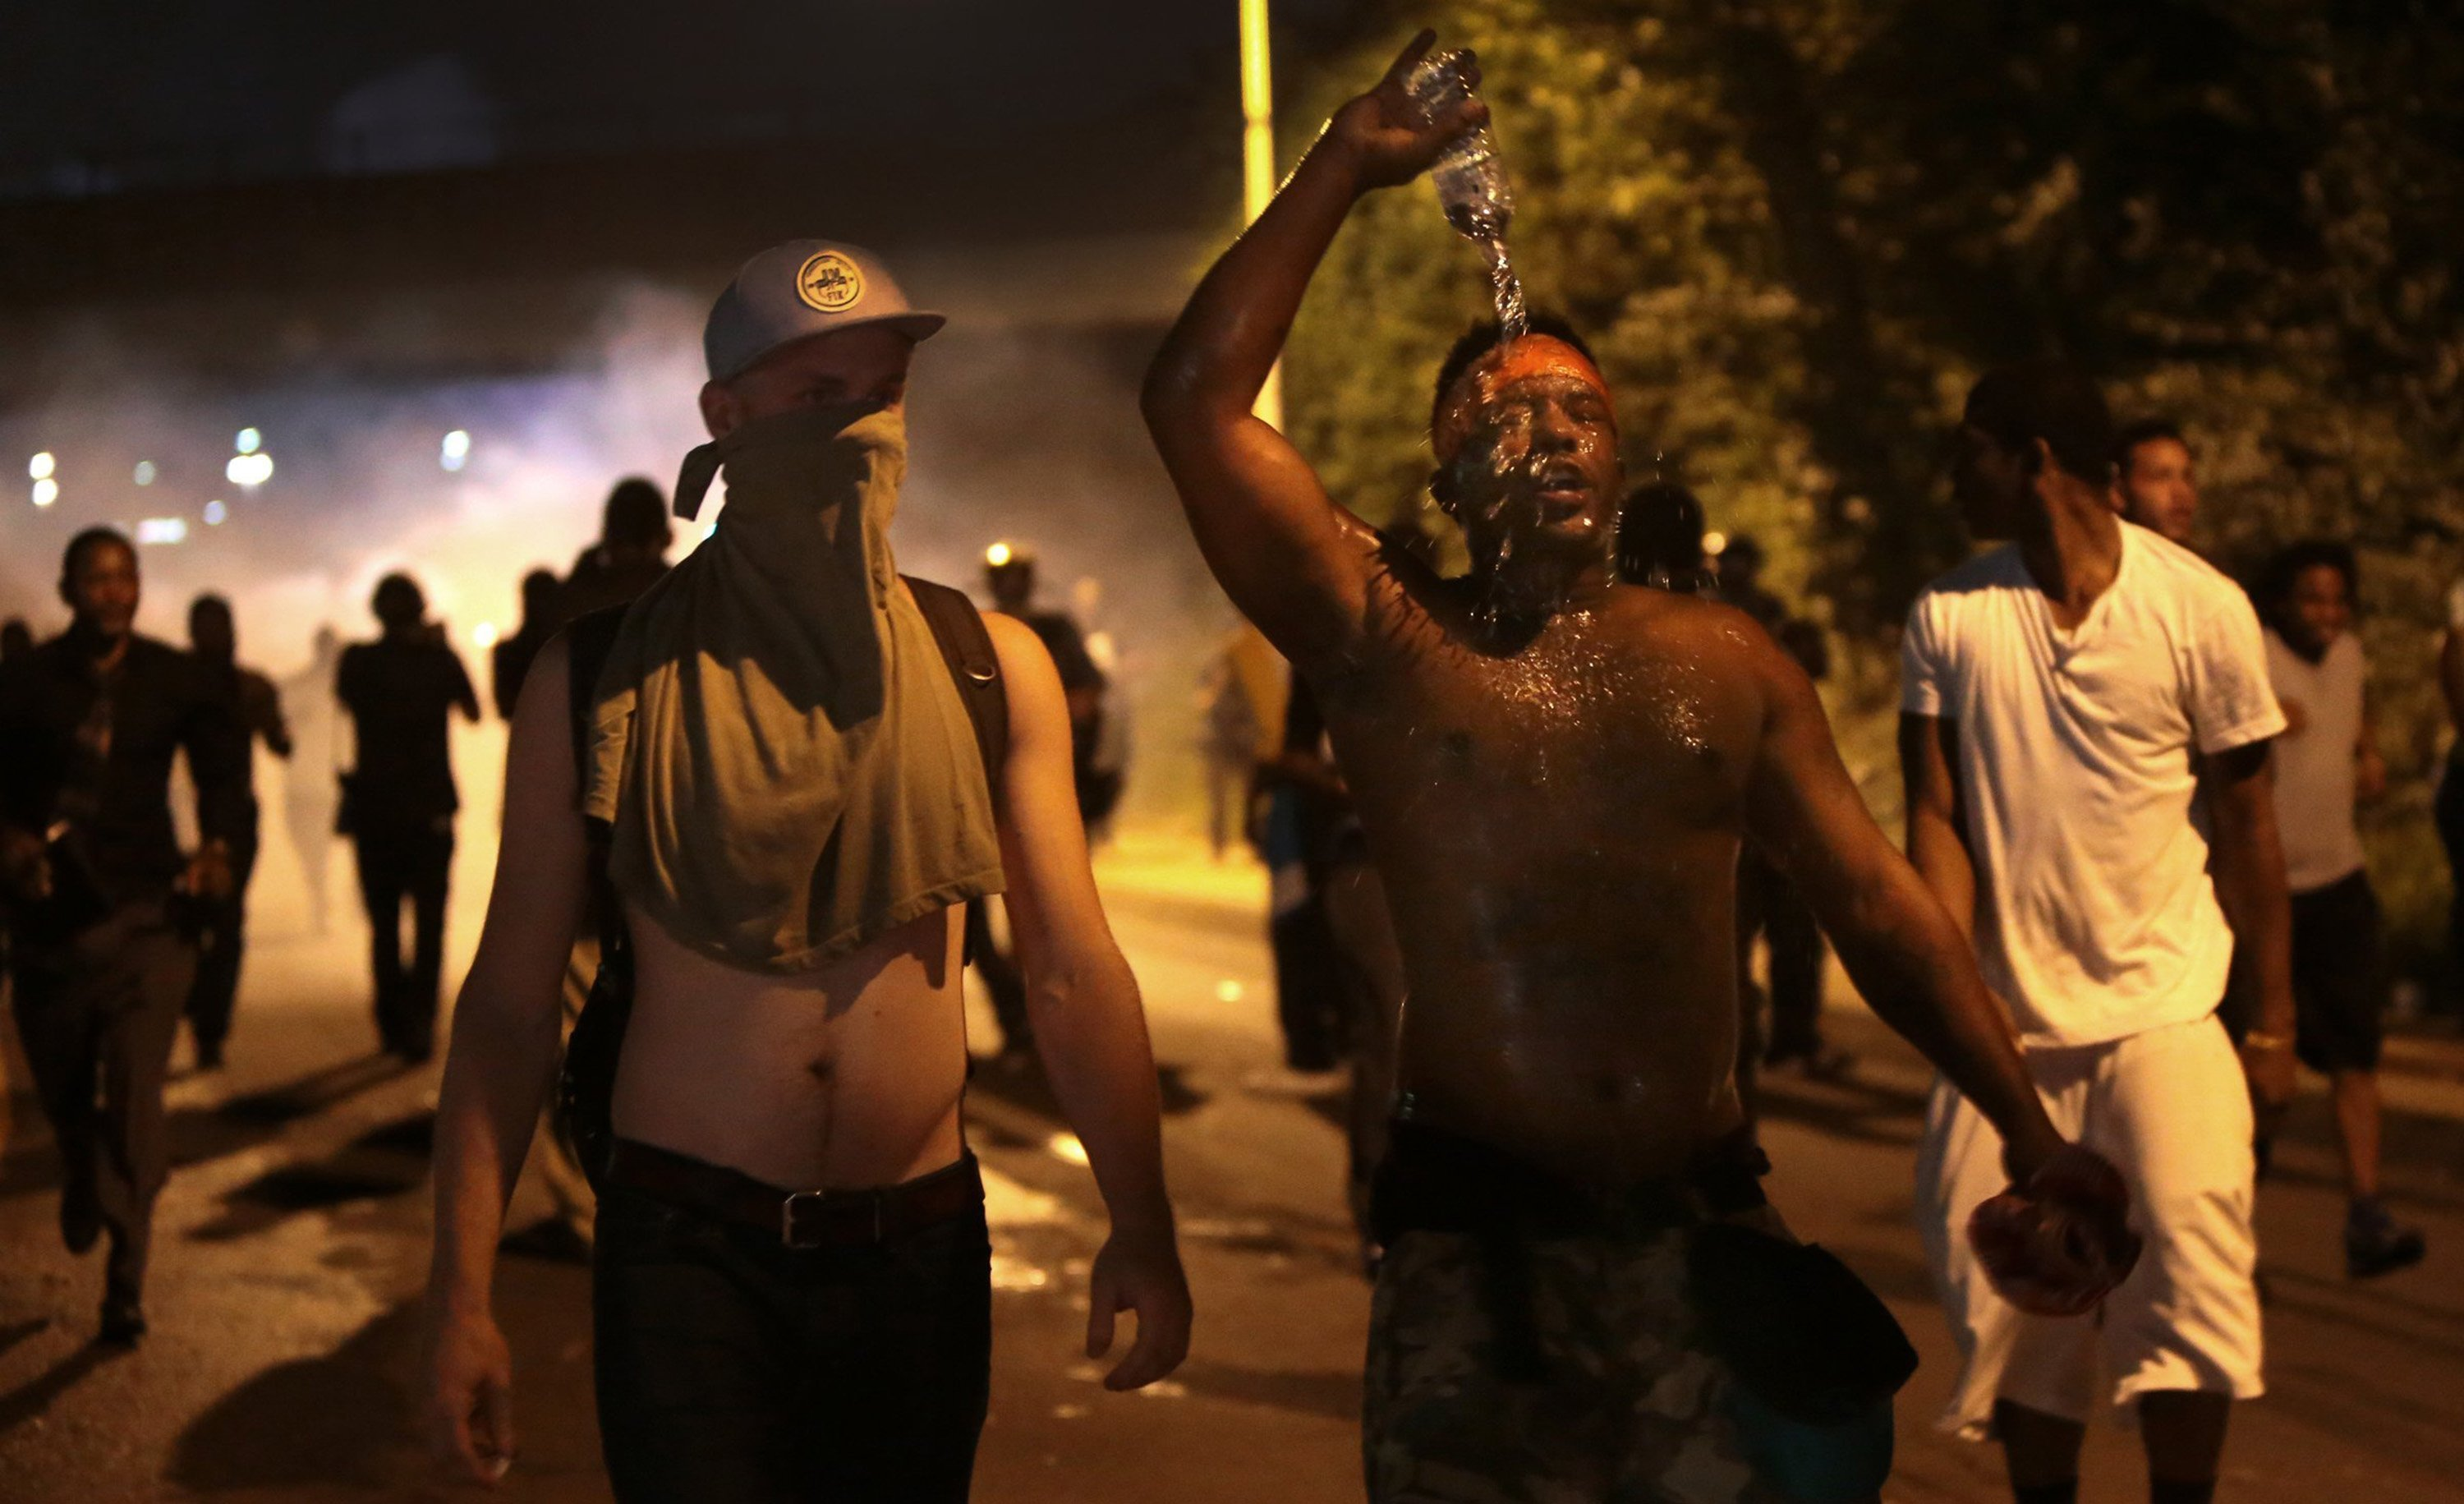 Protestors retreat from tear gas after marching toward the police command post on West Florissant Avenue on Sunday, Aug. 17, 2014 in Ferguson, Mo. (Robert Cohen/St. Louis Post-Dispatch/MCT)